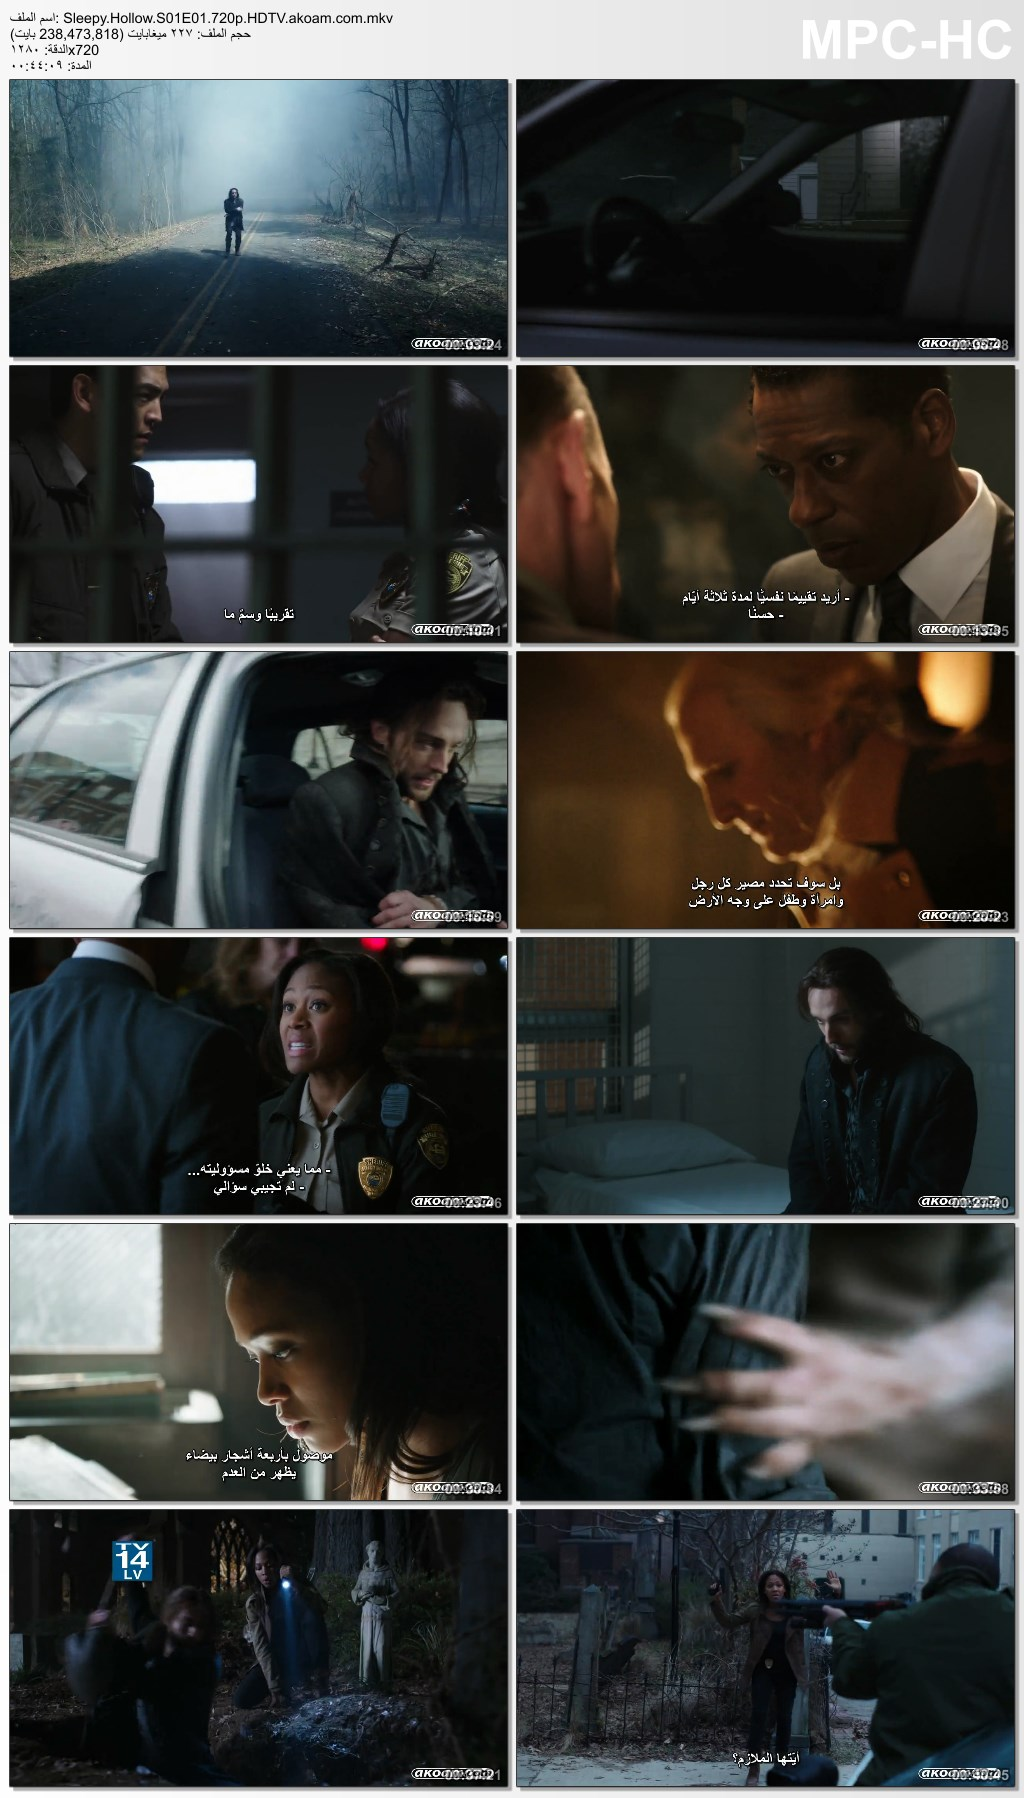 Sleepy Hollow,Sleepy Hollow 2013,Sleepy Hollow s1